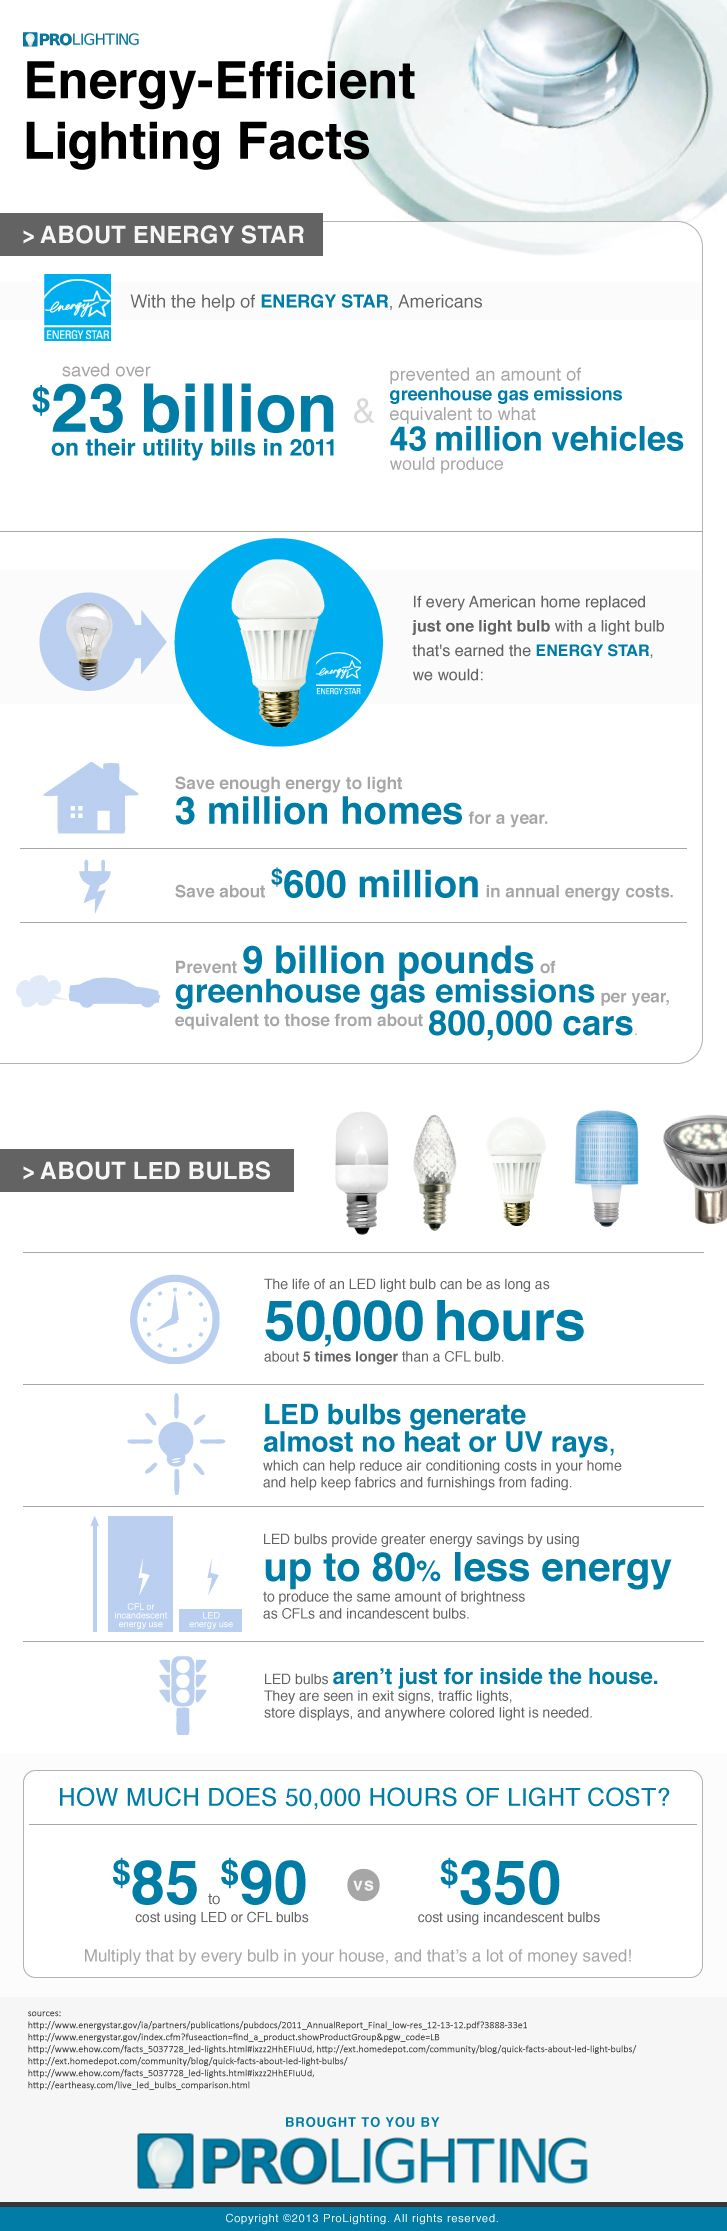 lovely facts about energy conservation #4: LED Lighting Facts | Visit our new infographic gallery at visualoop.com/